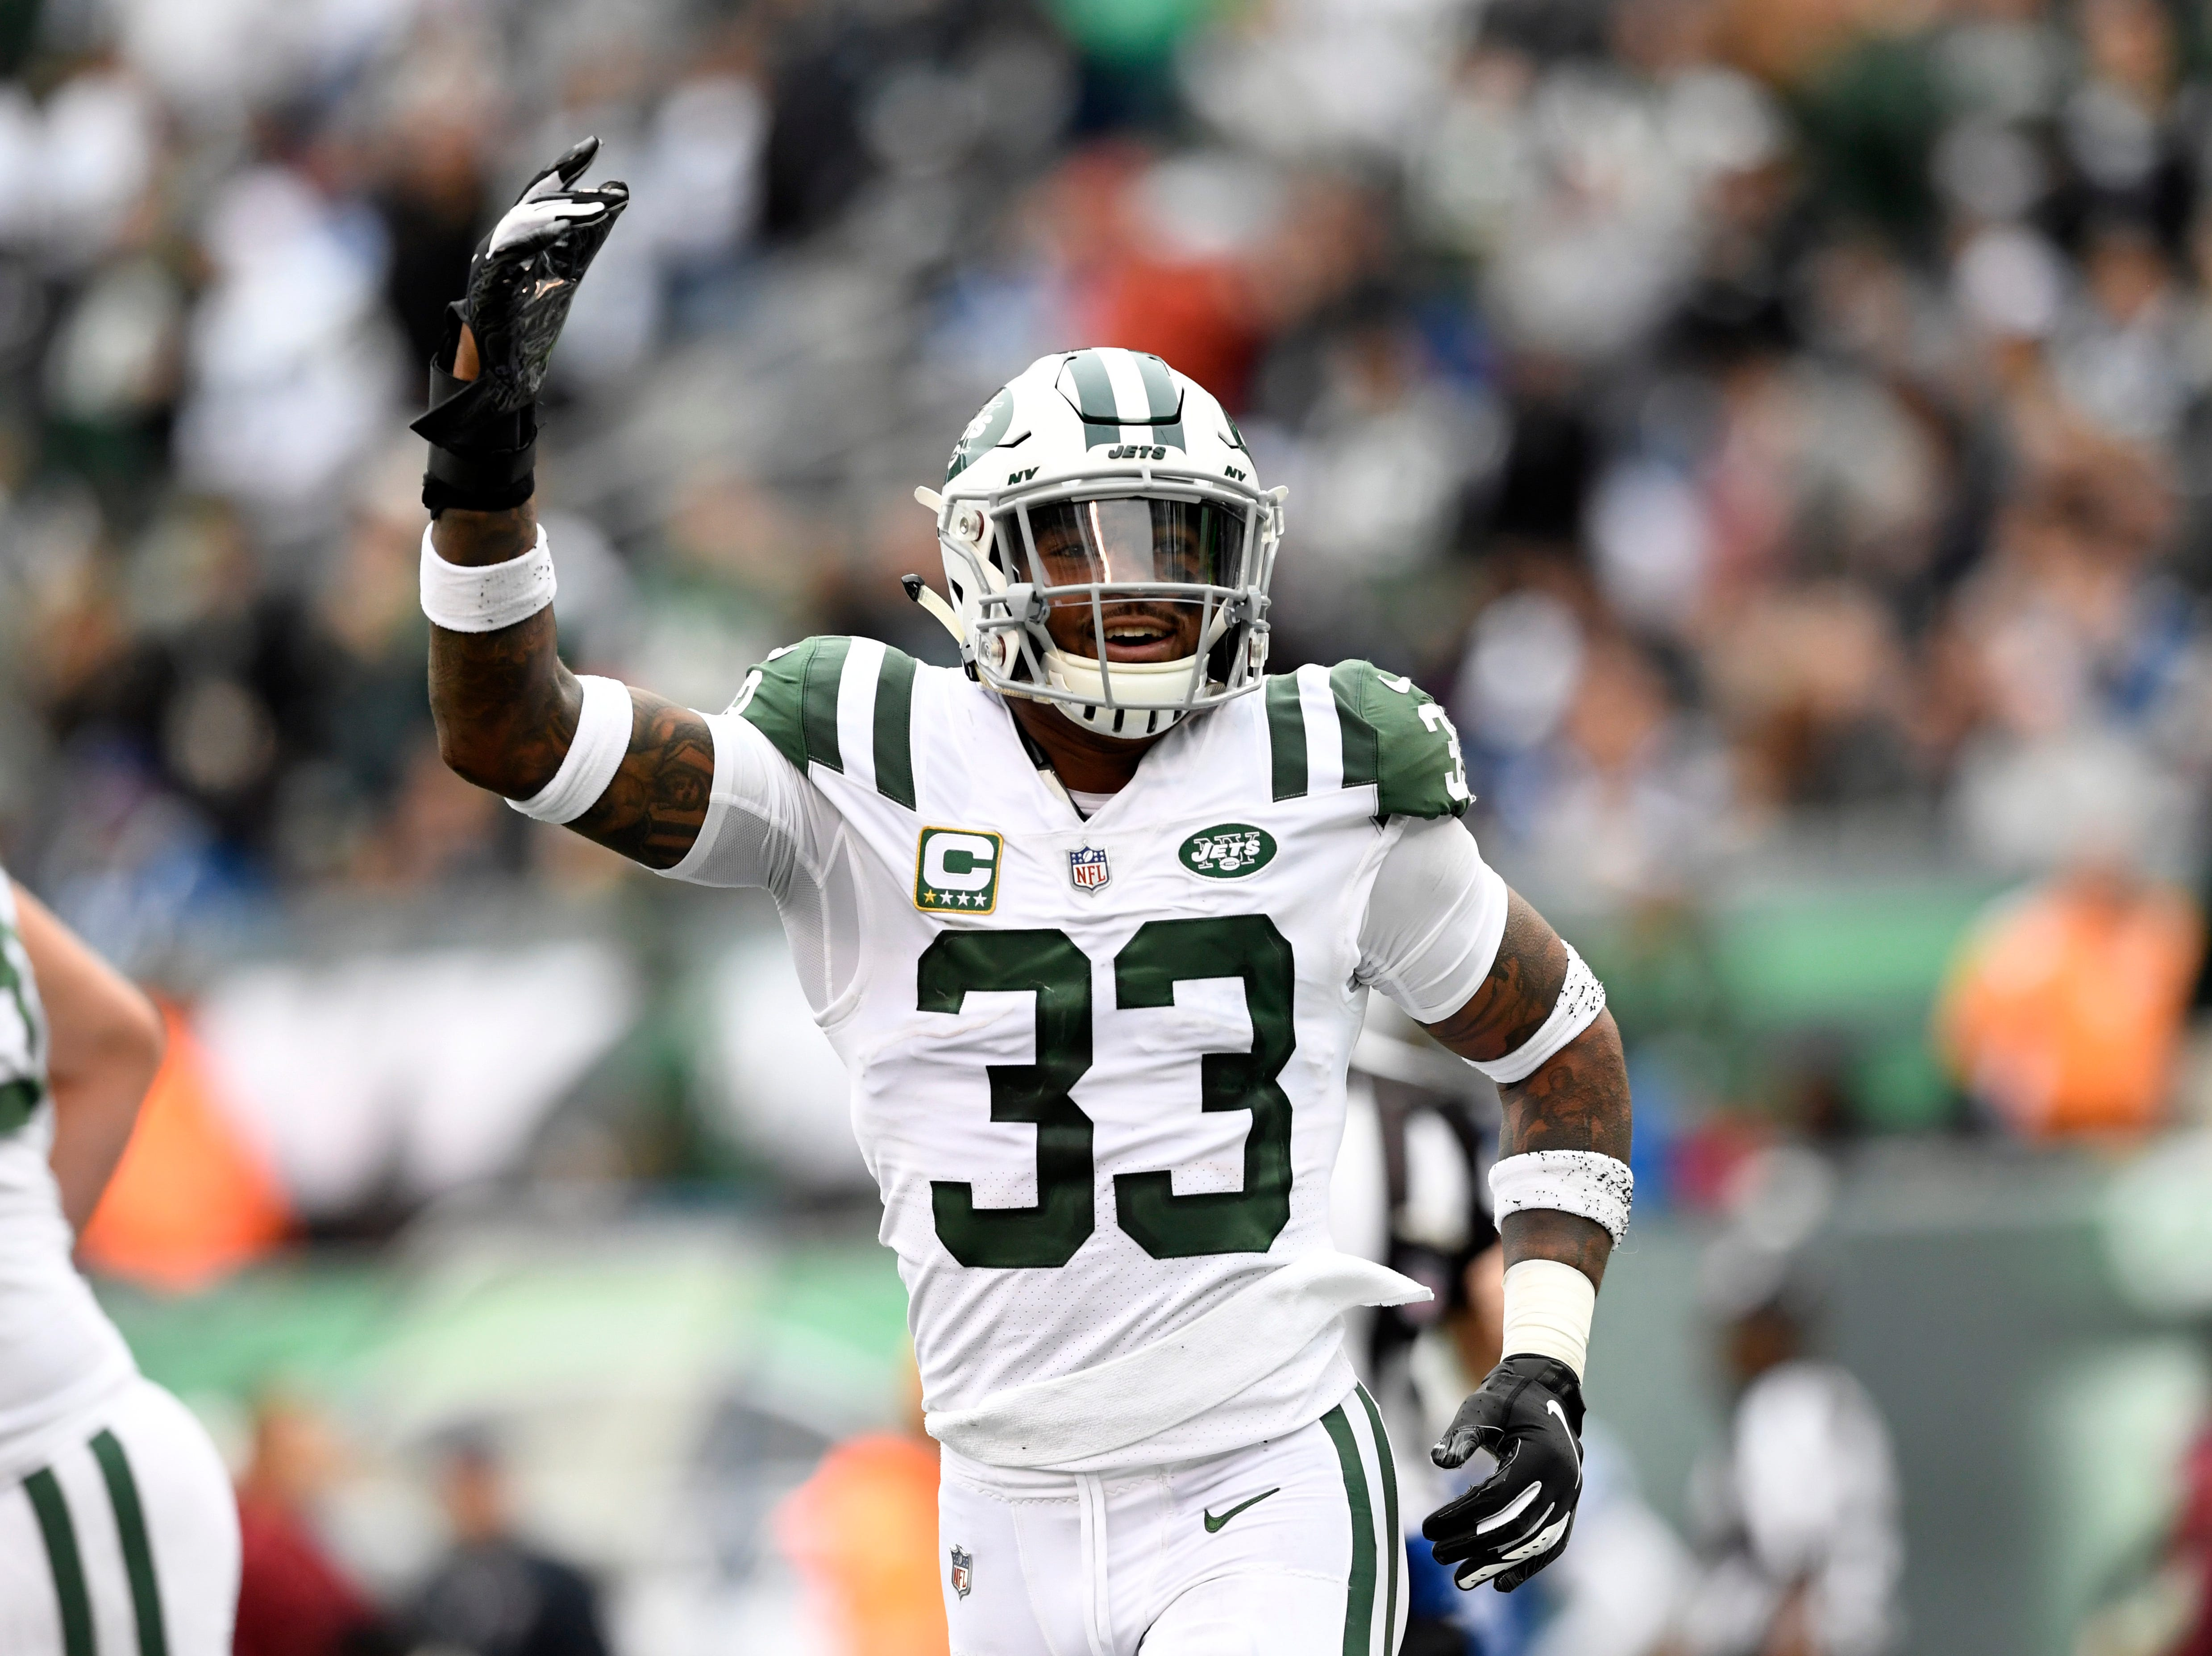 New York Jets safety Jamal Adams (33) celebrates a turnover in the second half. The New York Jets host the Indianapolis Colts in Week 6 on Sunday, Oct. 14, 2018, in East Rutherford.